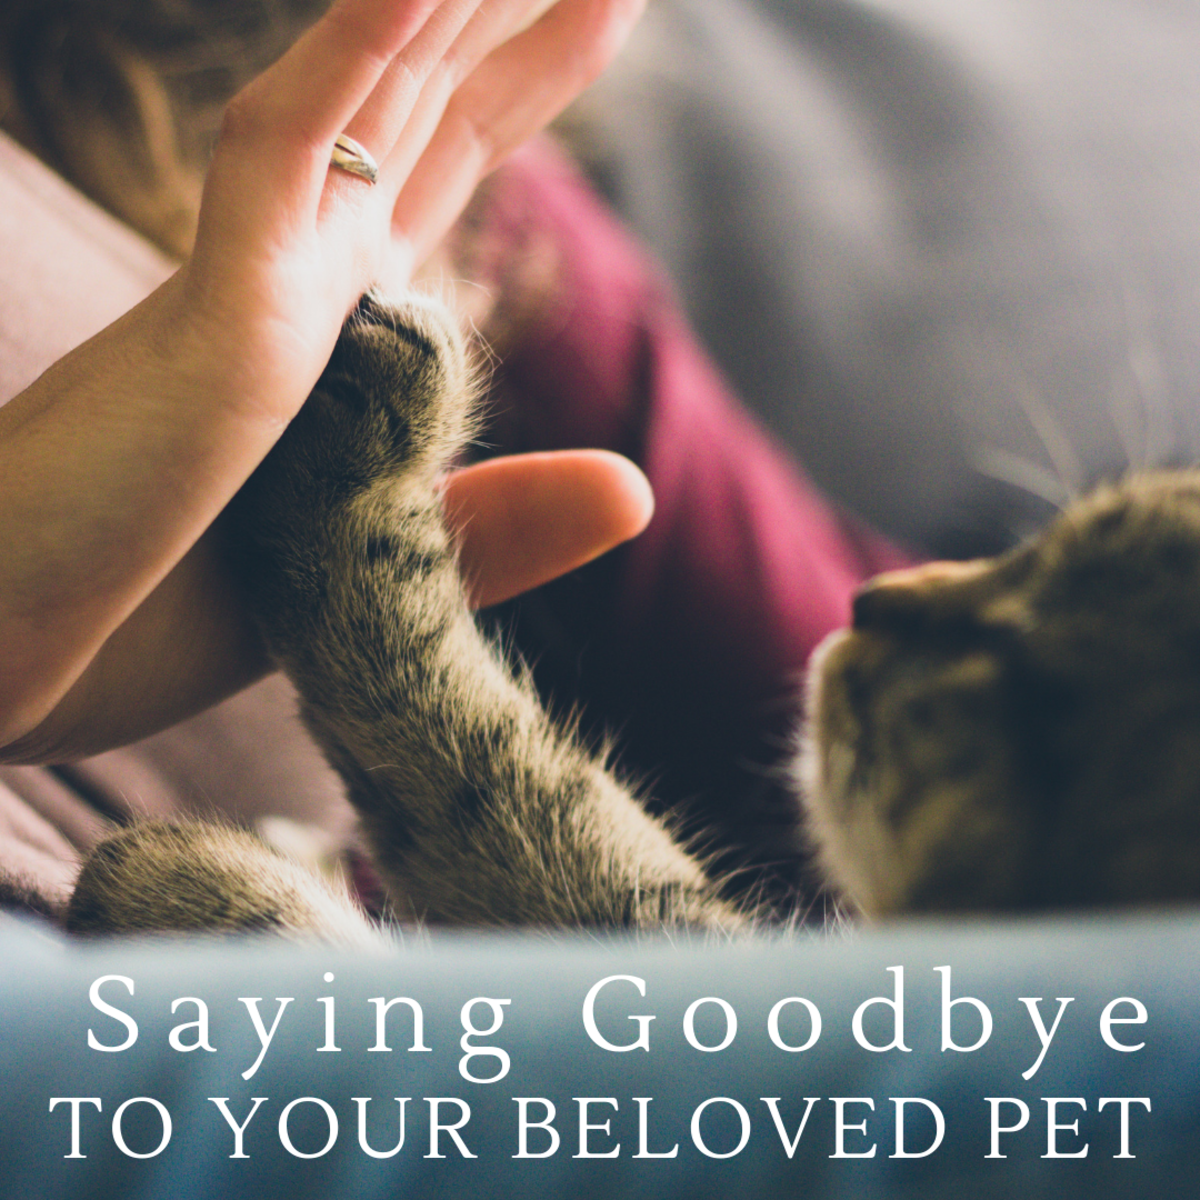 Put Your Pet First When It's Time to Say That Last Goodbye